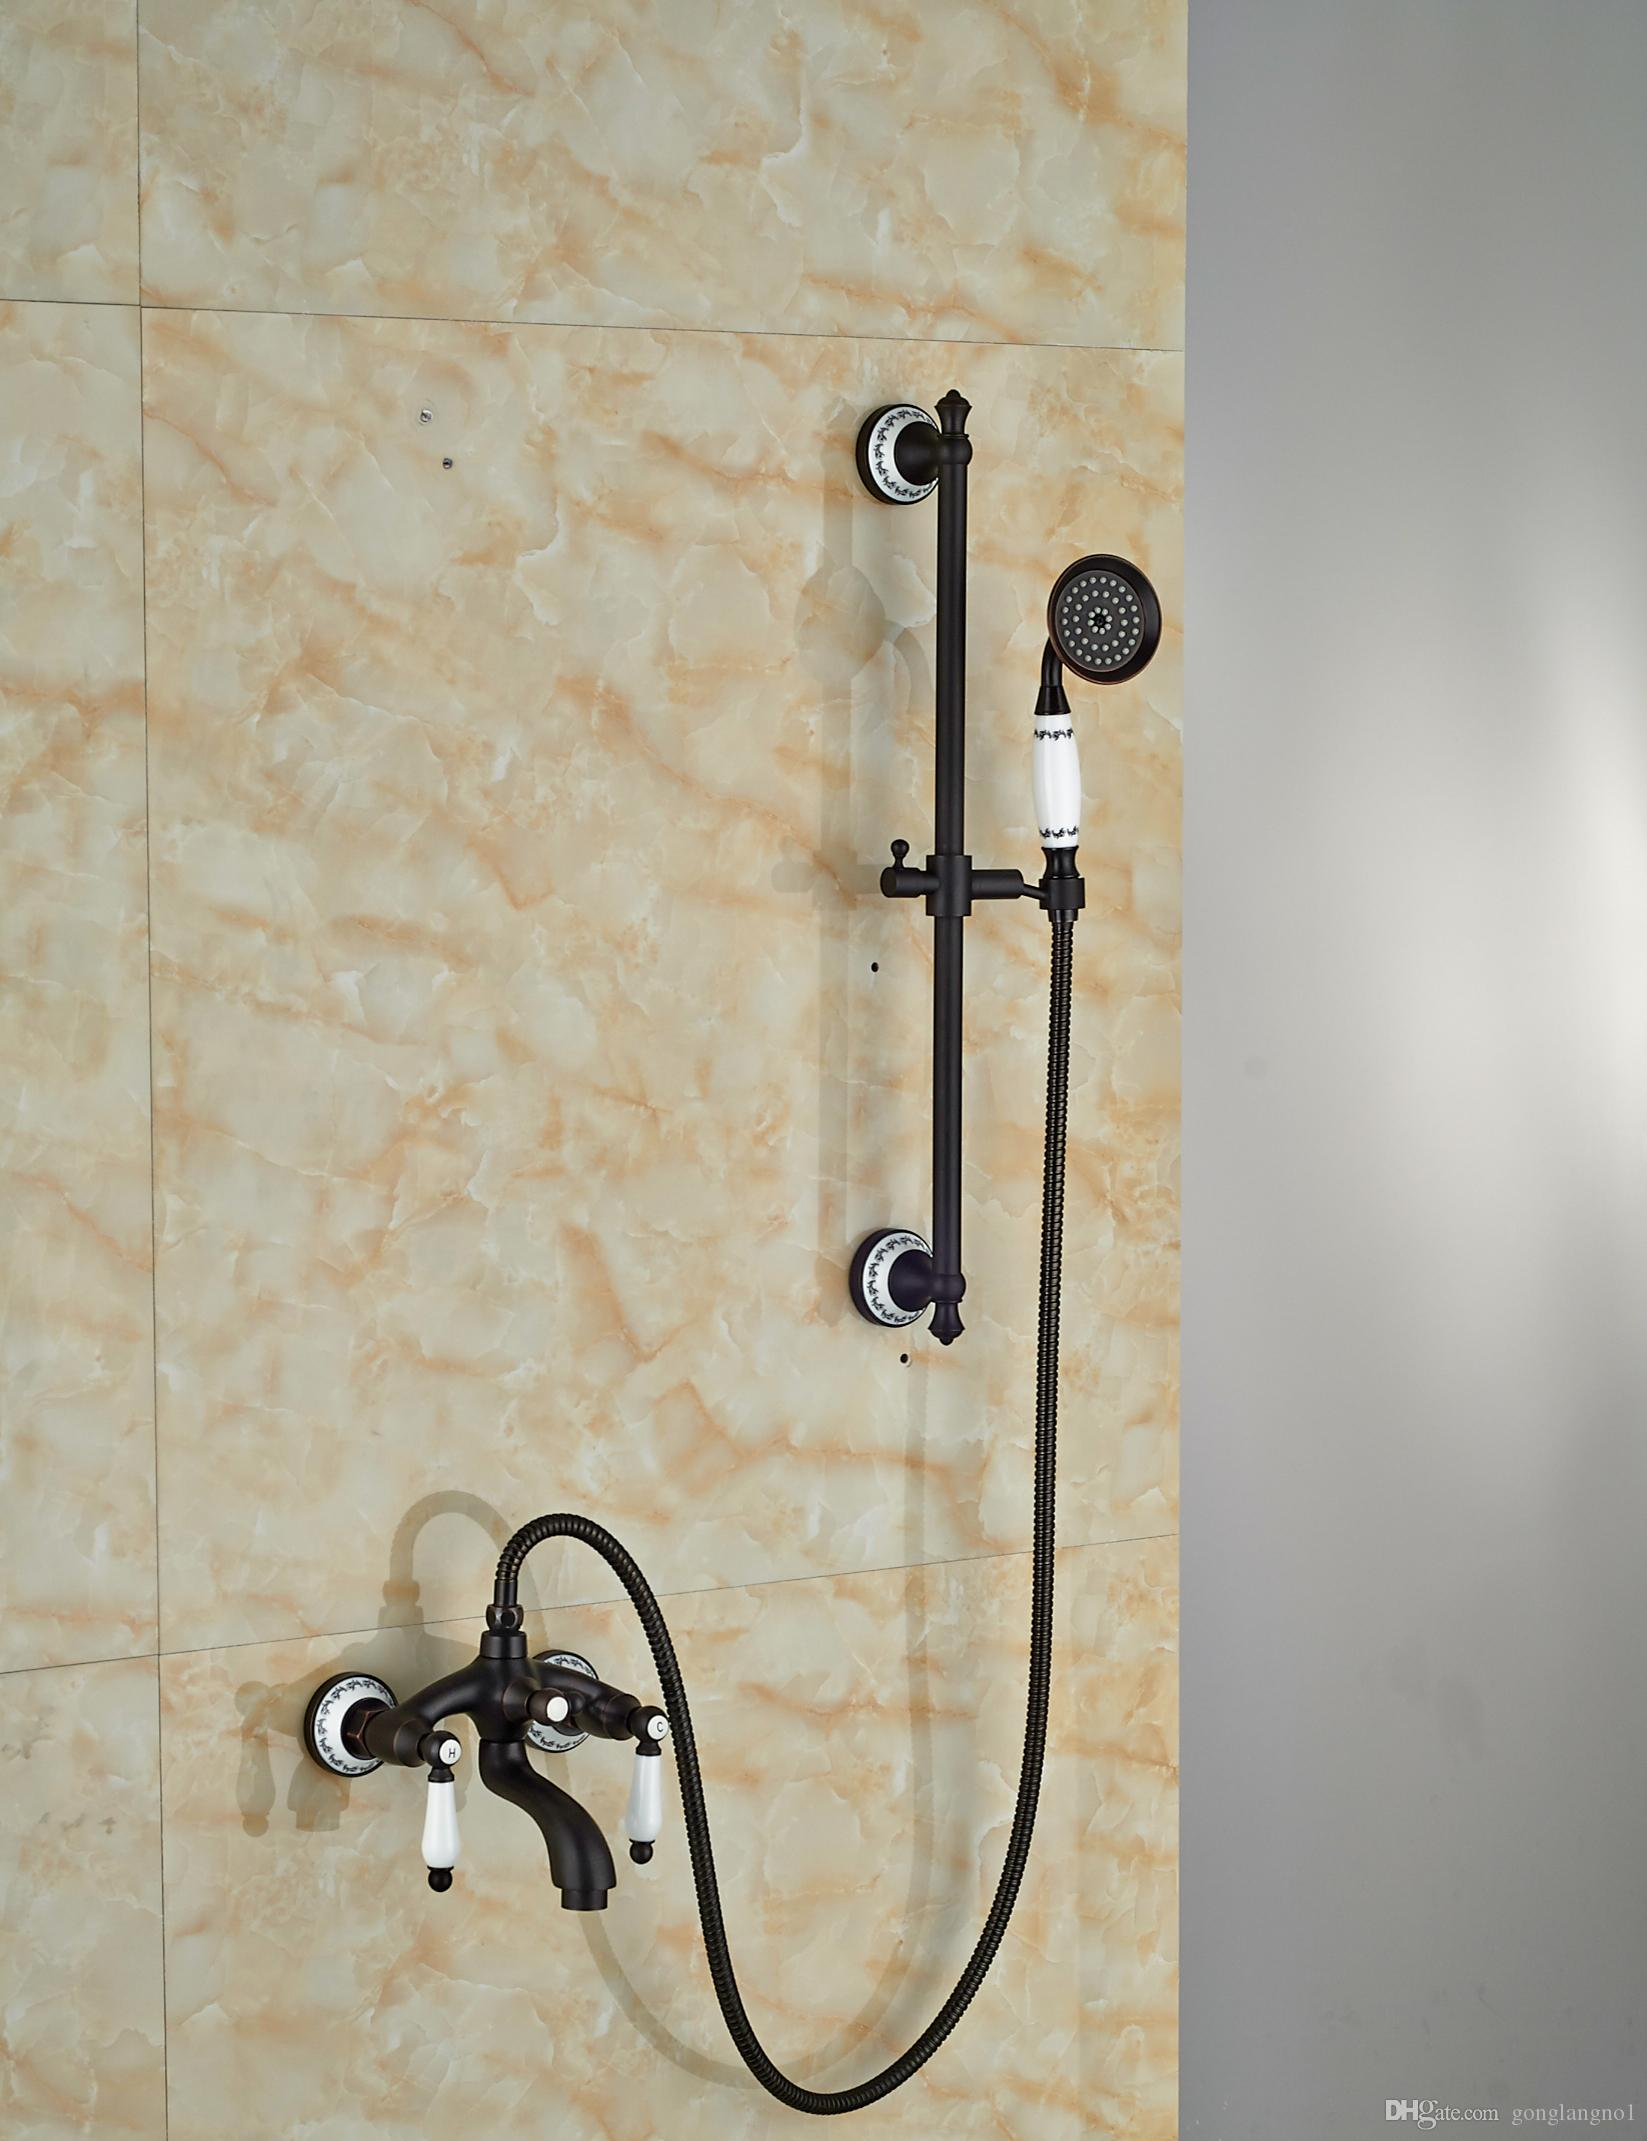 2019 Wholesale And Retail Oil Rubbed Bronze Bathroom Tub Faucet Solid Brass Hand Held Shower Sprayer W Slide Bar Mixer Tap Valve From Gonglangno1